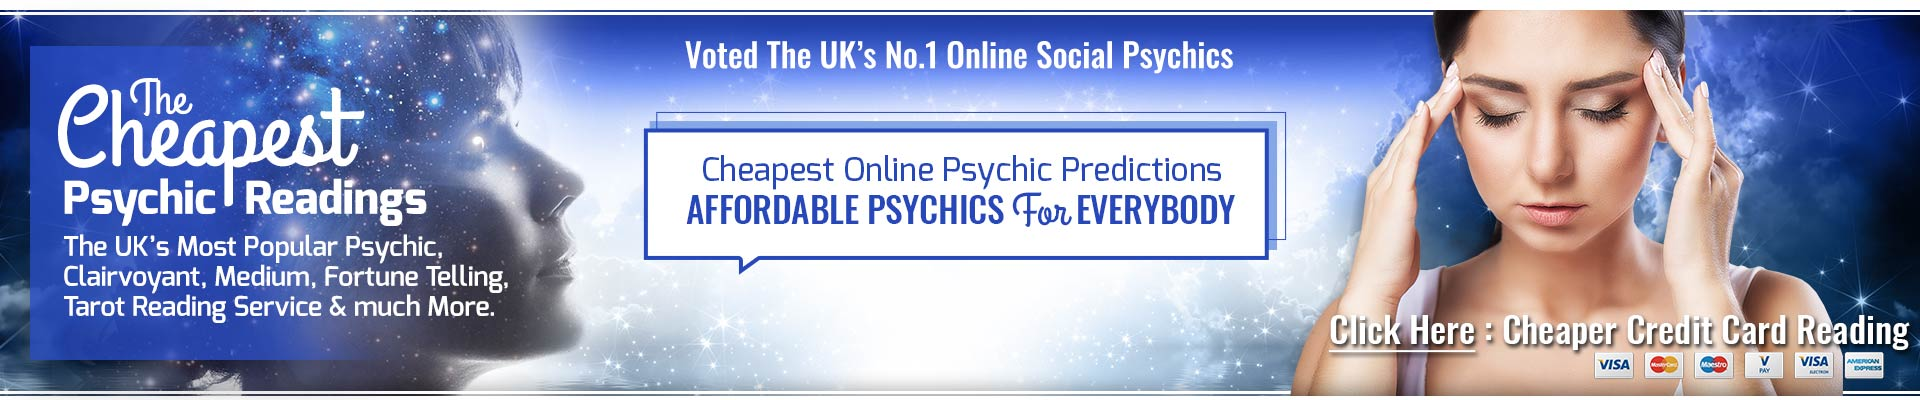 Cheapest Social Psychics